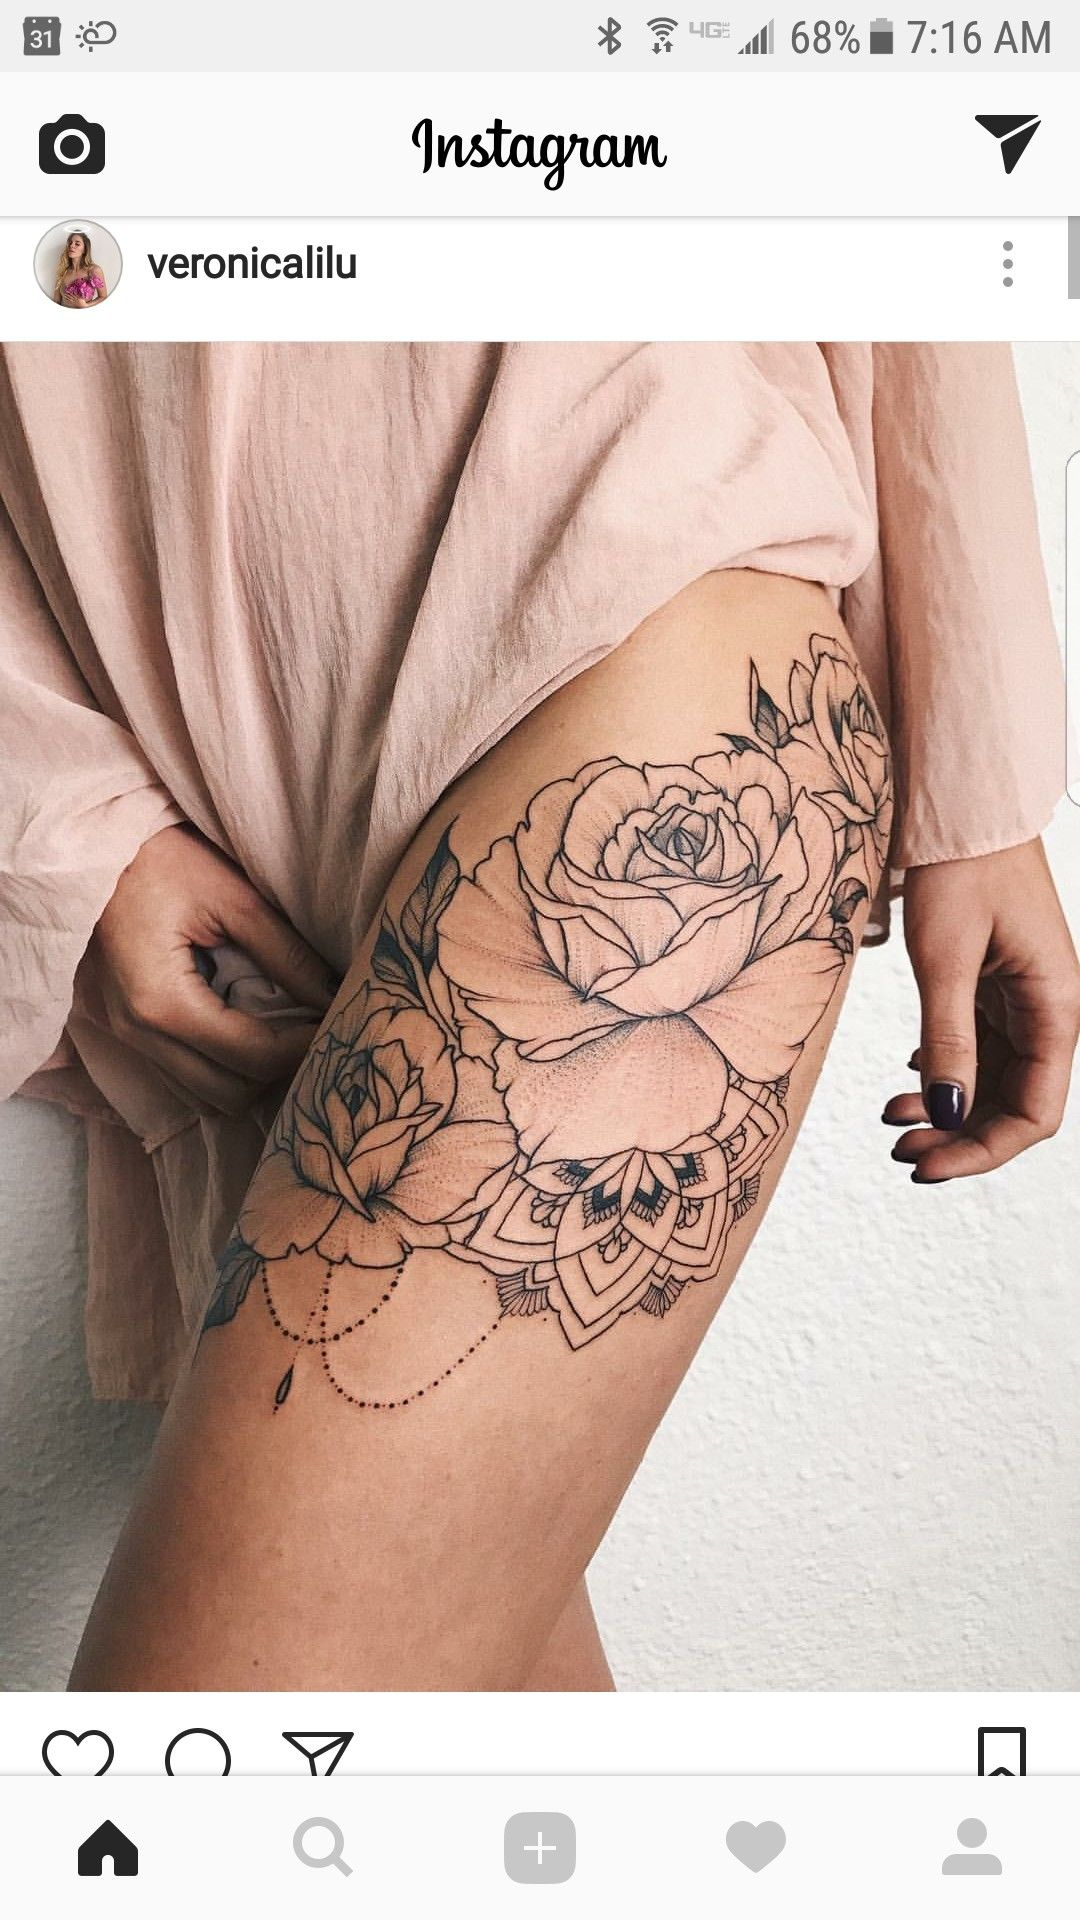 Epingle Par Carina Gross Sur Tattoo Ideen Pinterest Tatouage